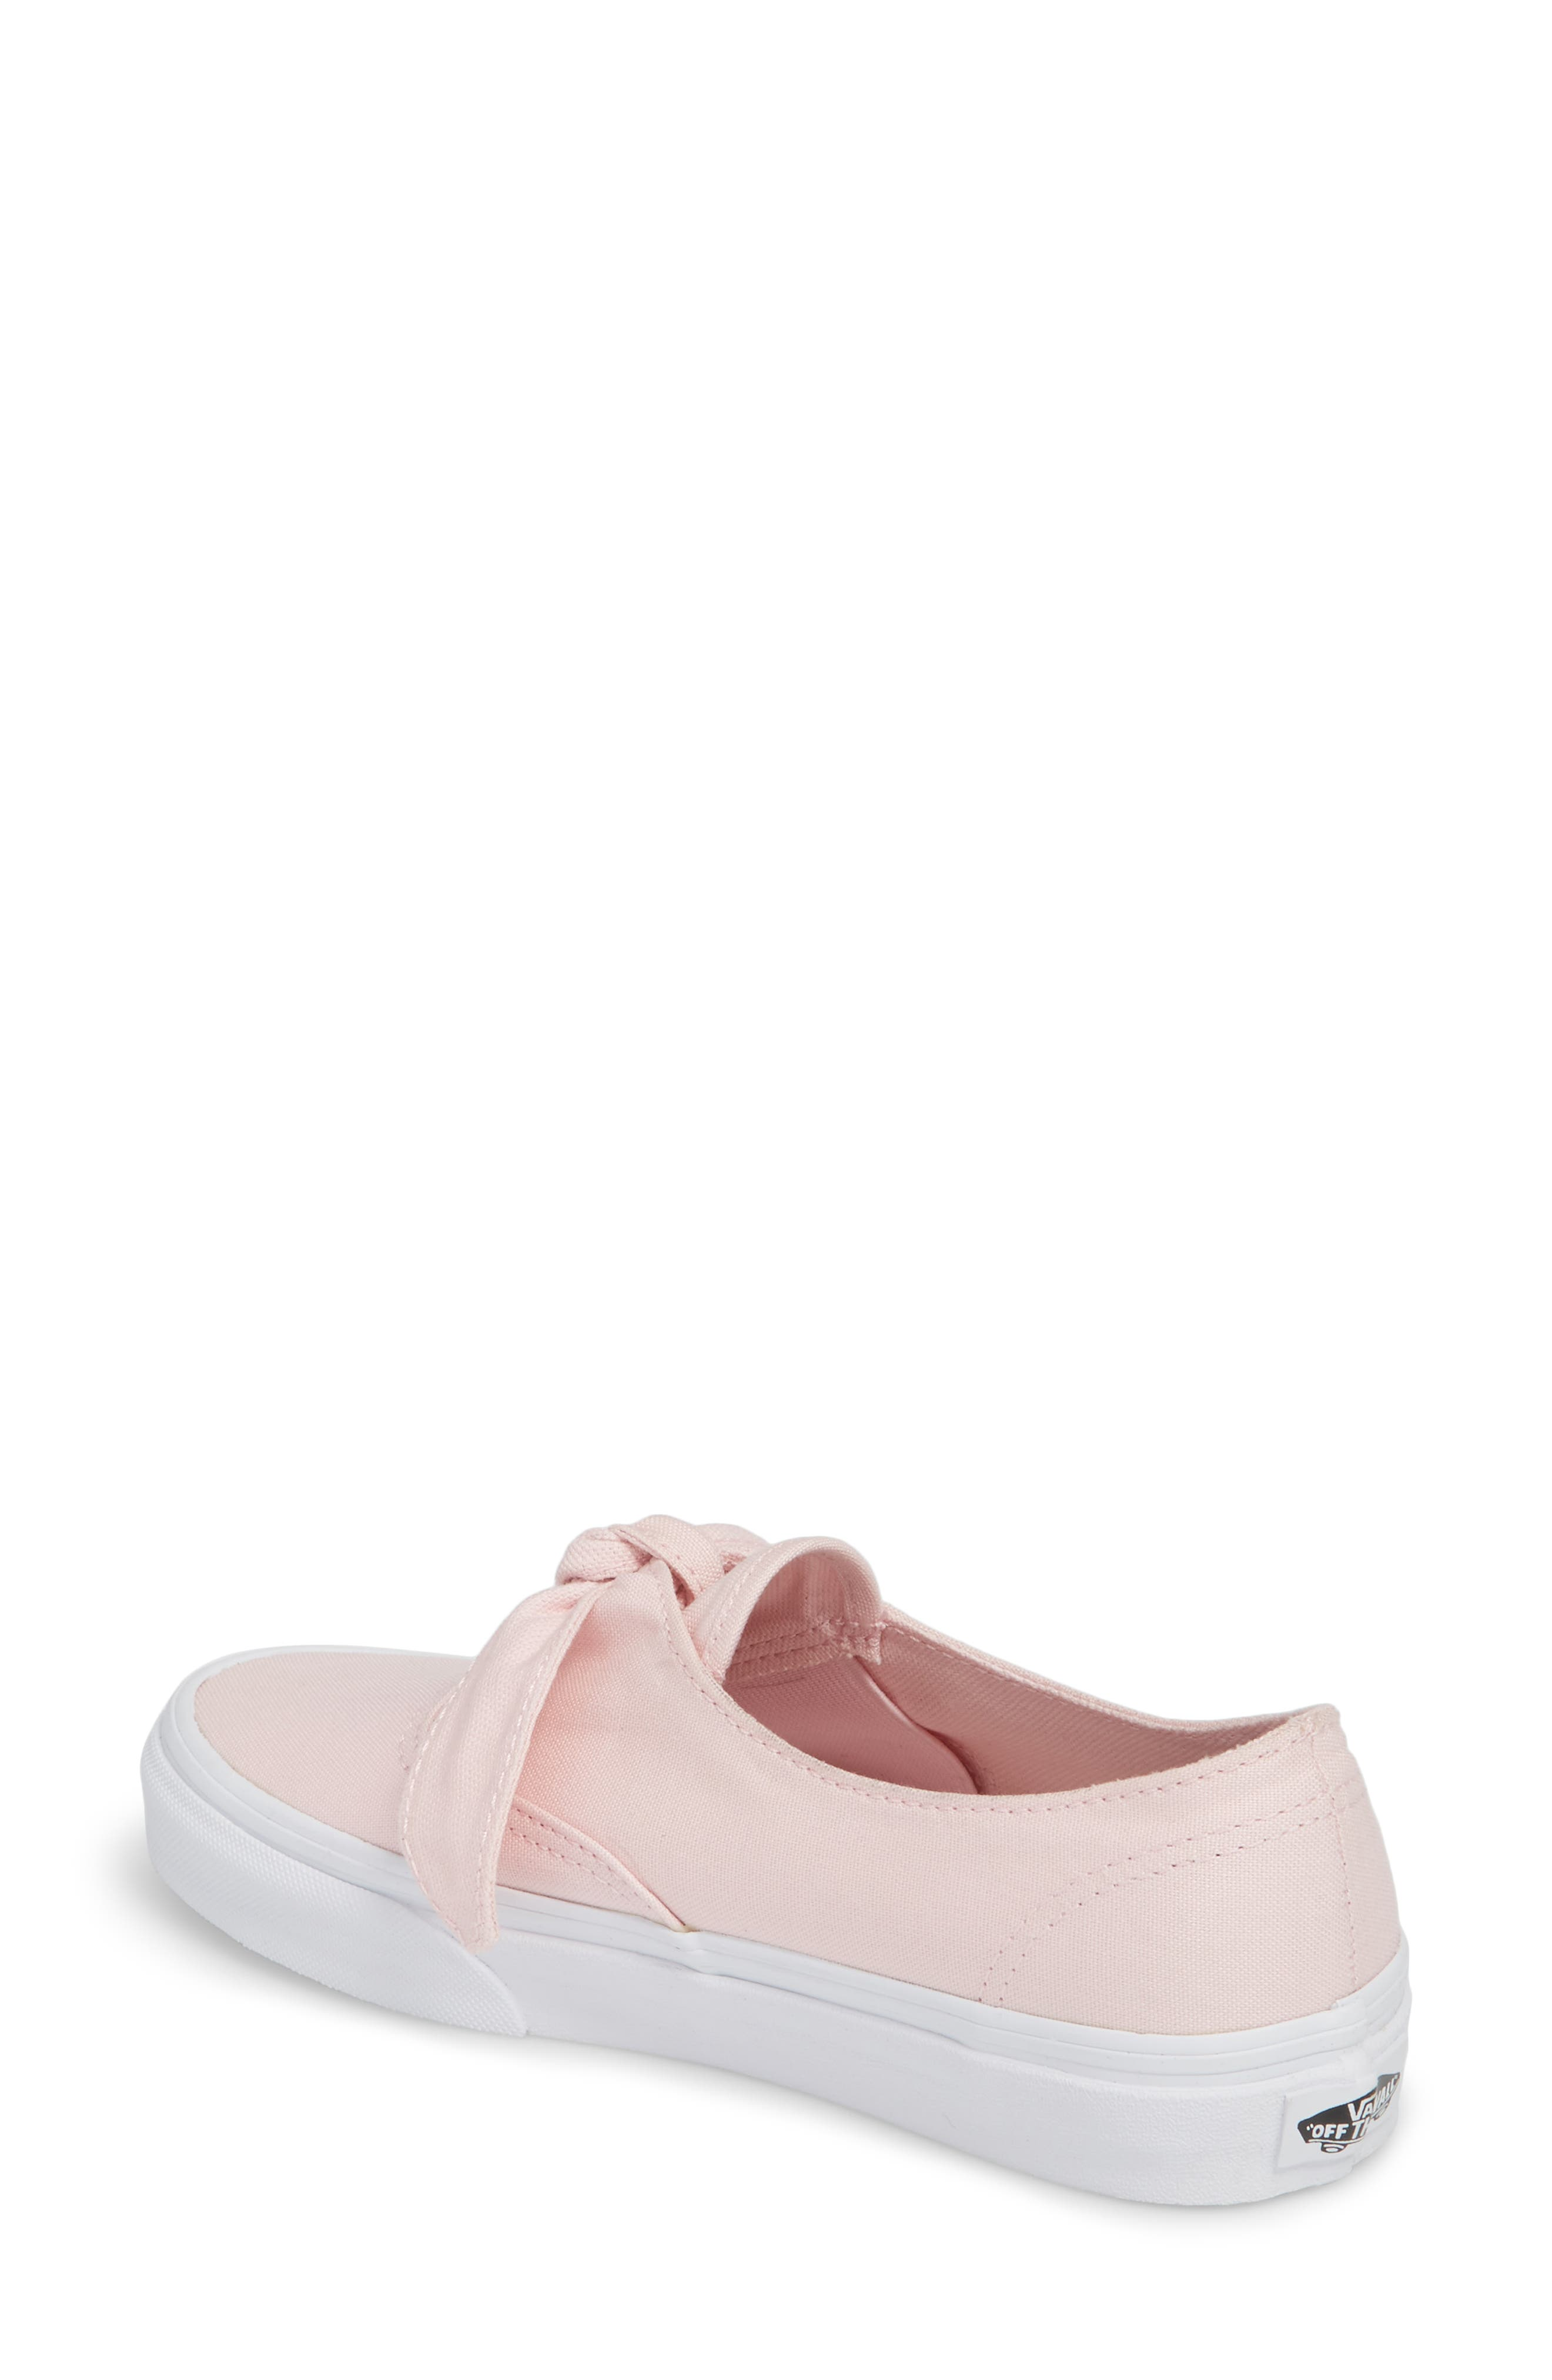 UA Authentic Knotted Slip-On Sneaker,                             Alternate thumbnail 2, color,                             Chalk Pink/ True White